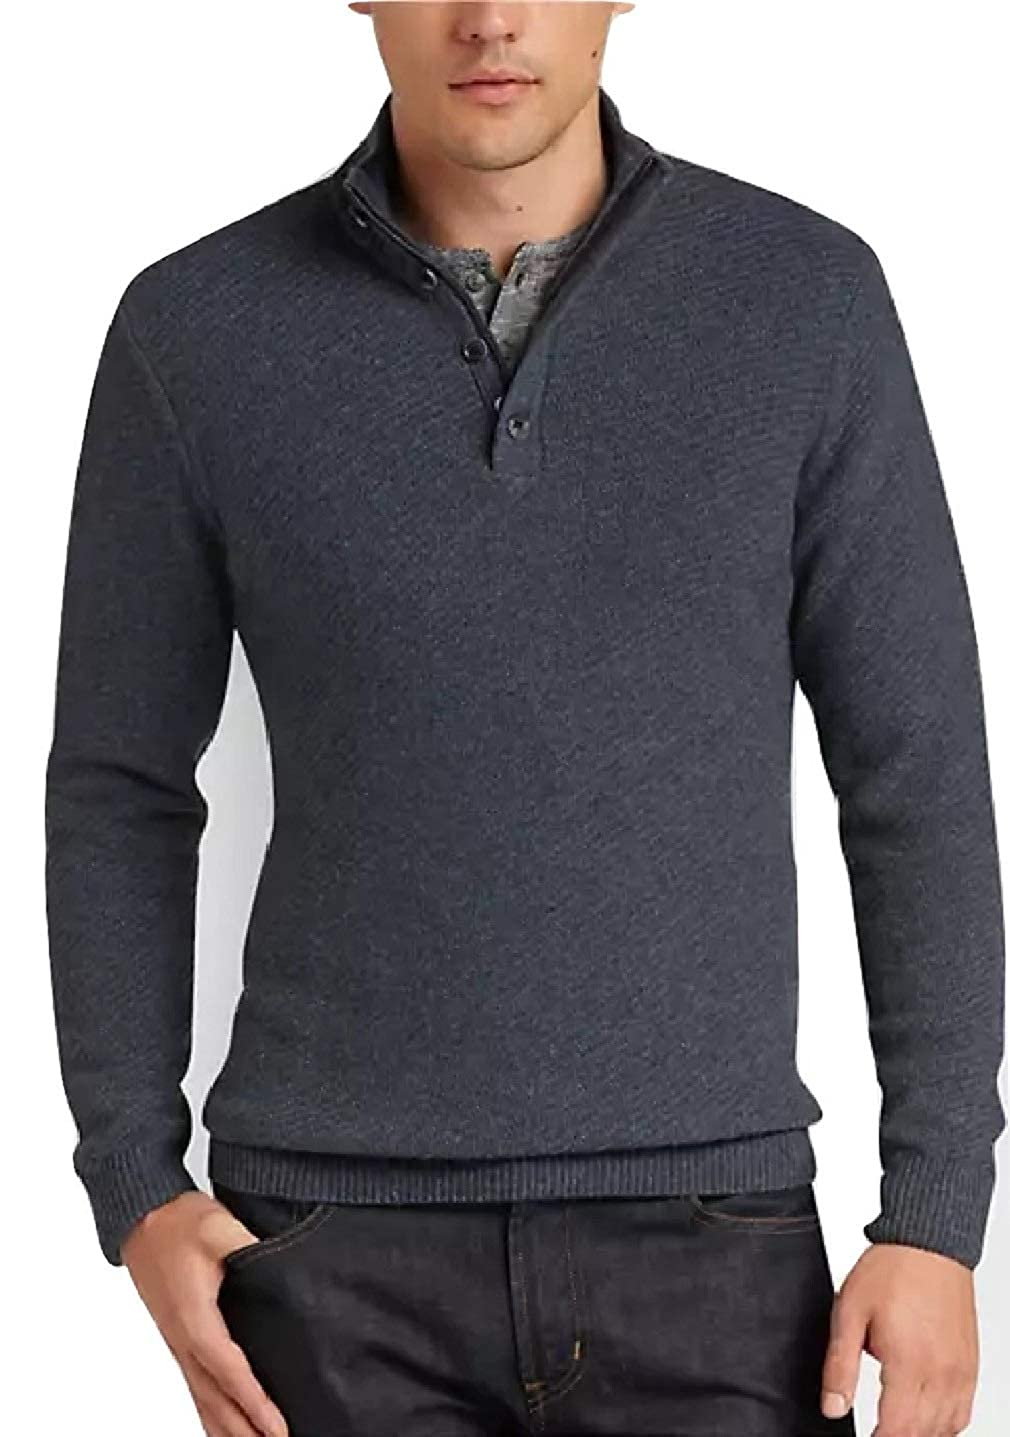 Joseph Abboud Mens Wool Blend Sweater